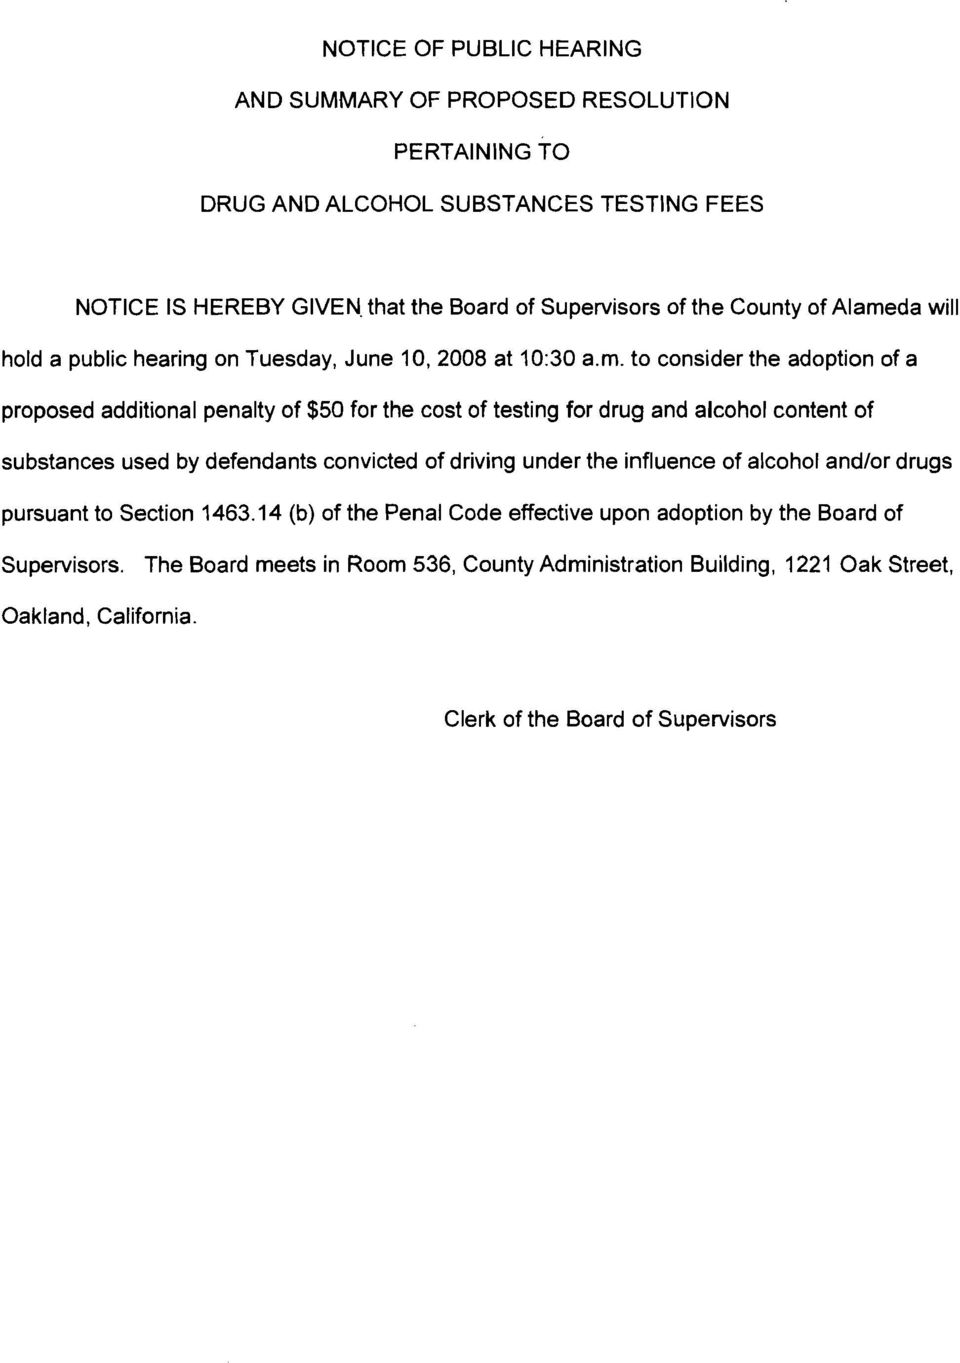 da will hold a public hearing on Tuesday, June 10, 2008 at 10:30 a.m.